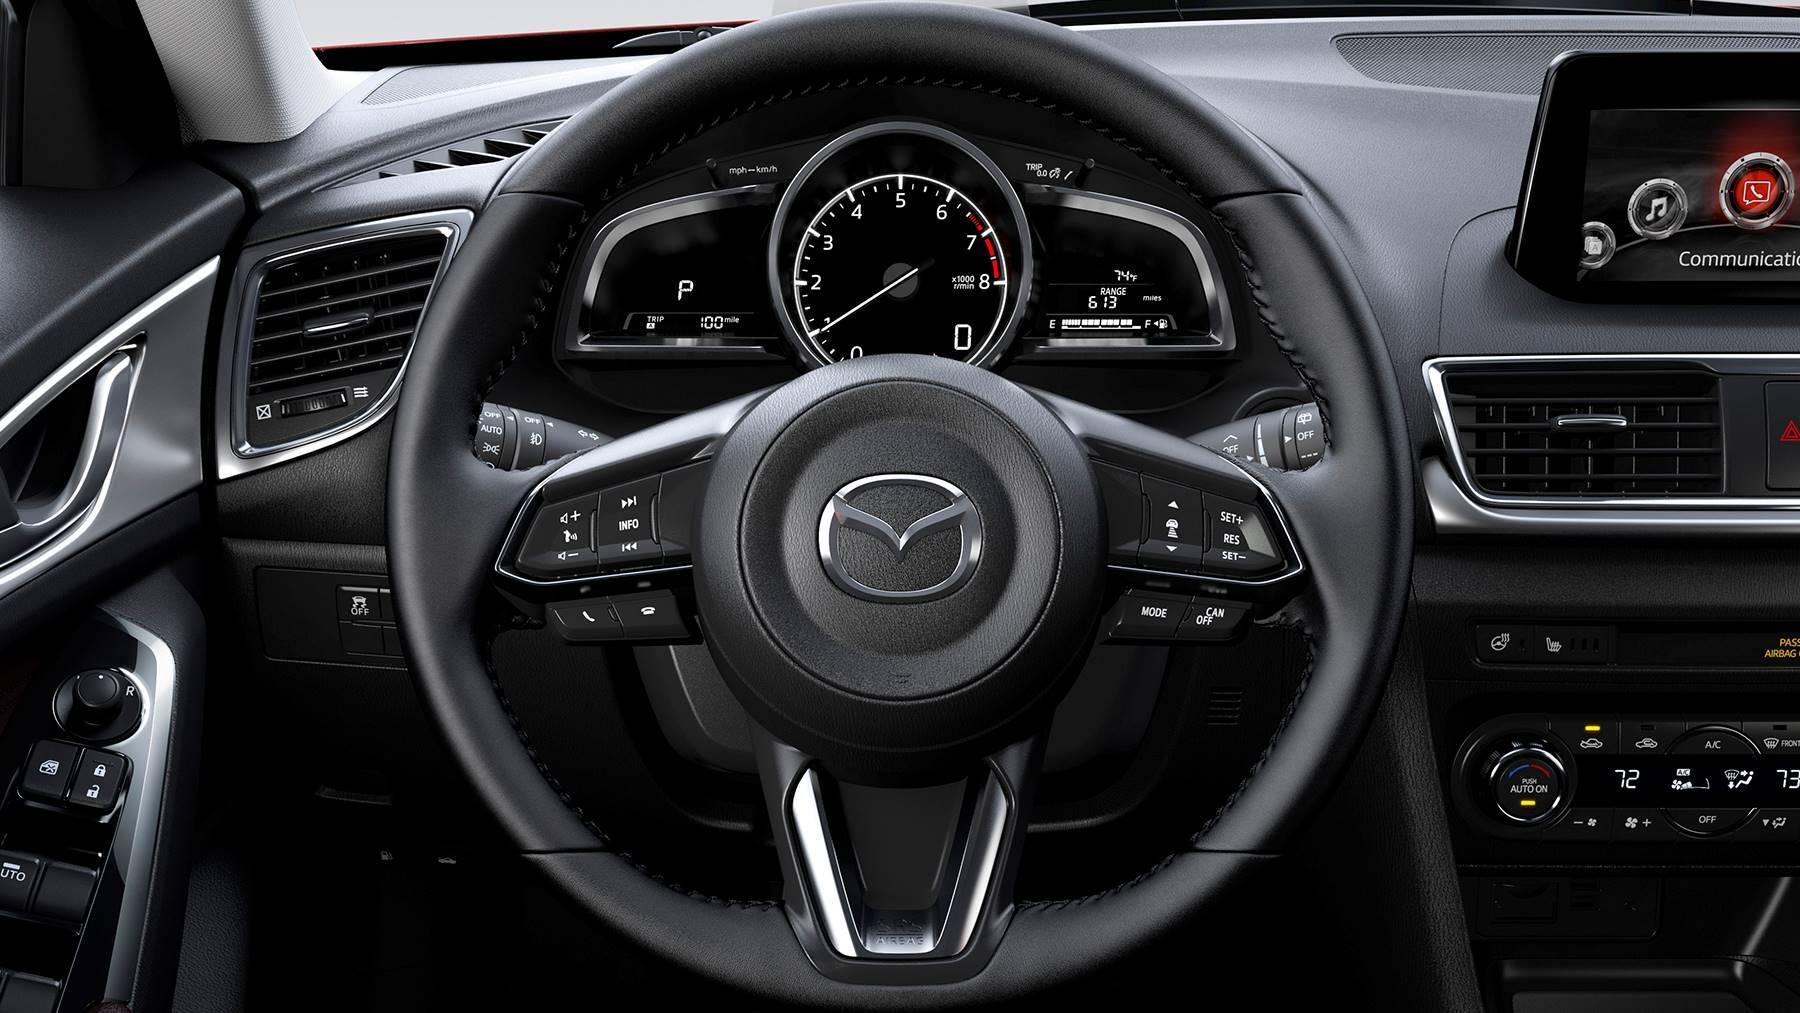 mazda3 dashboard photo